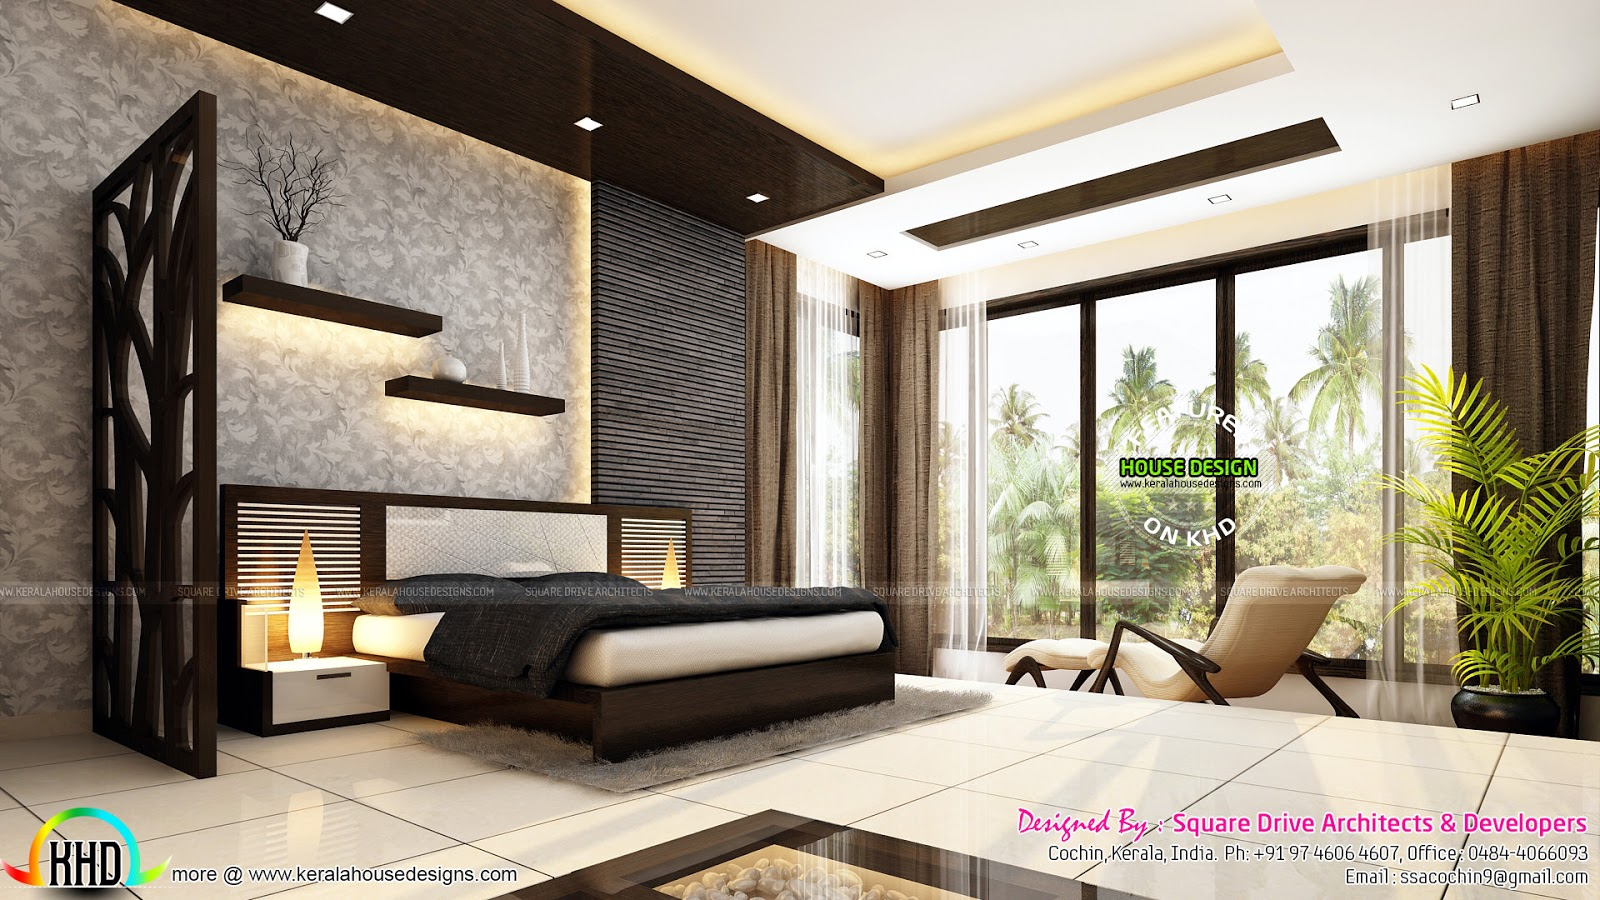 Very beautiful modern interior designs kerala home for Interior designs of the house